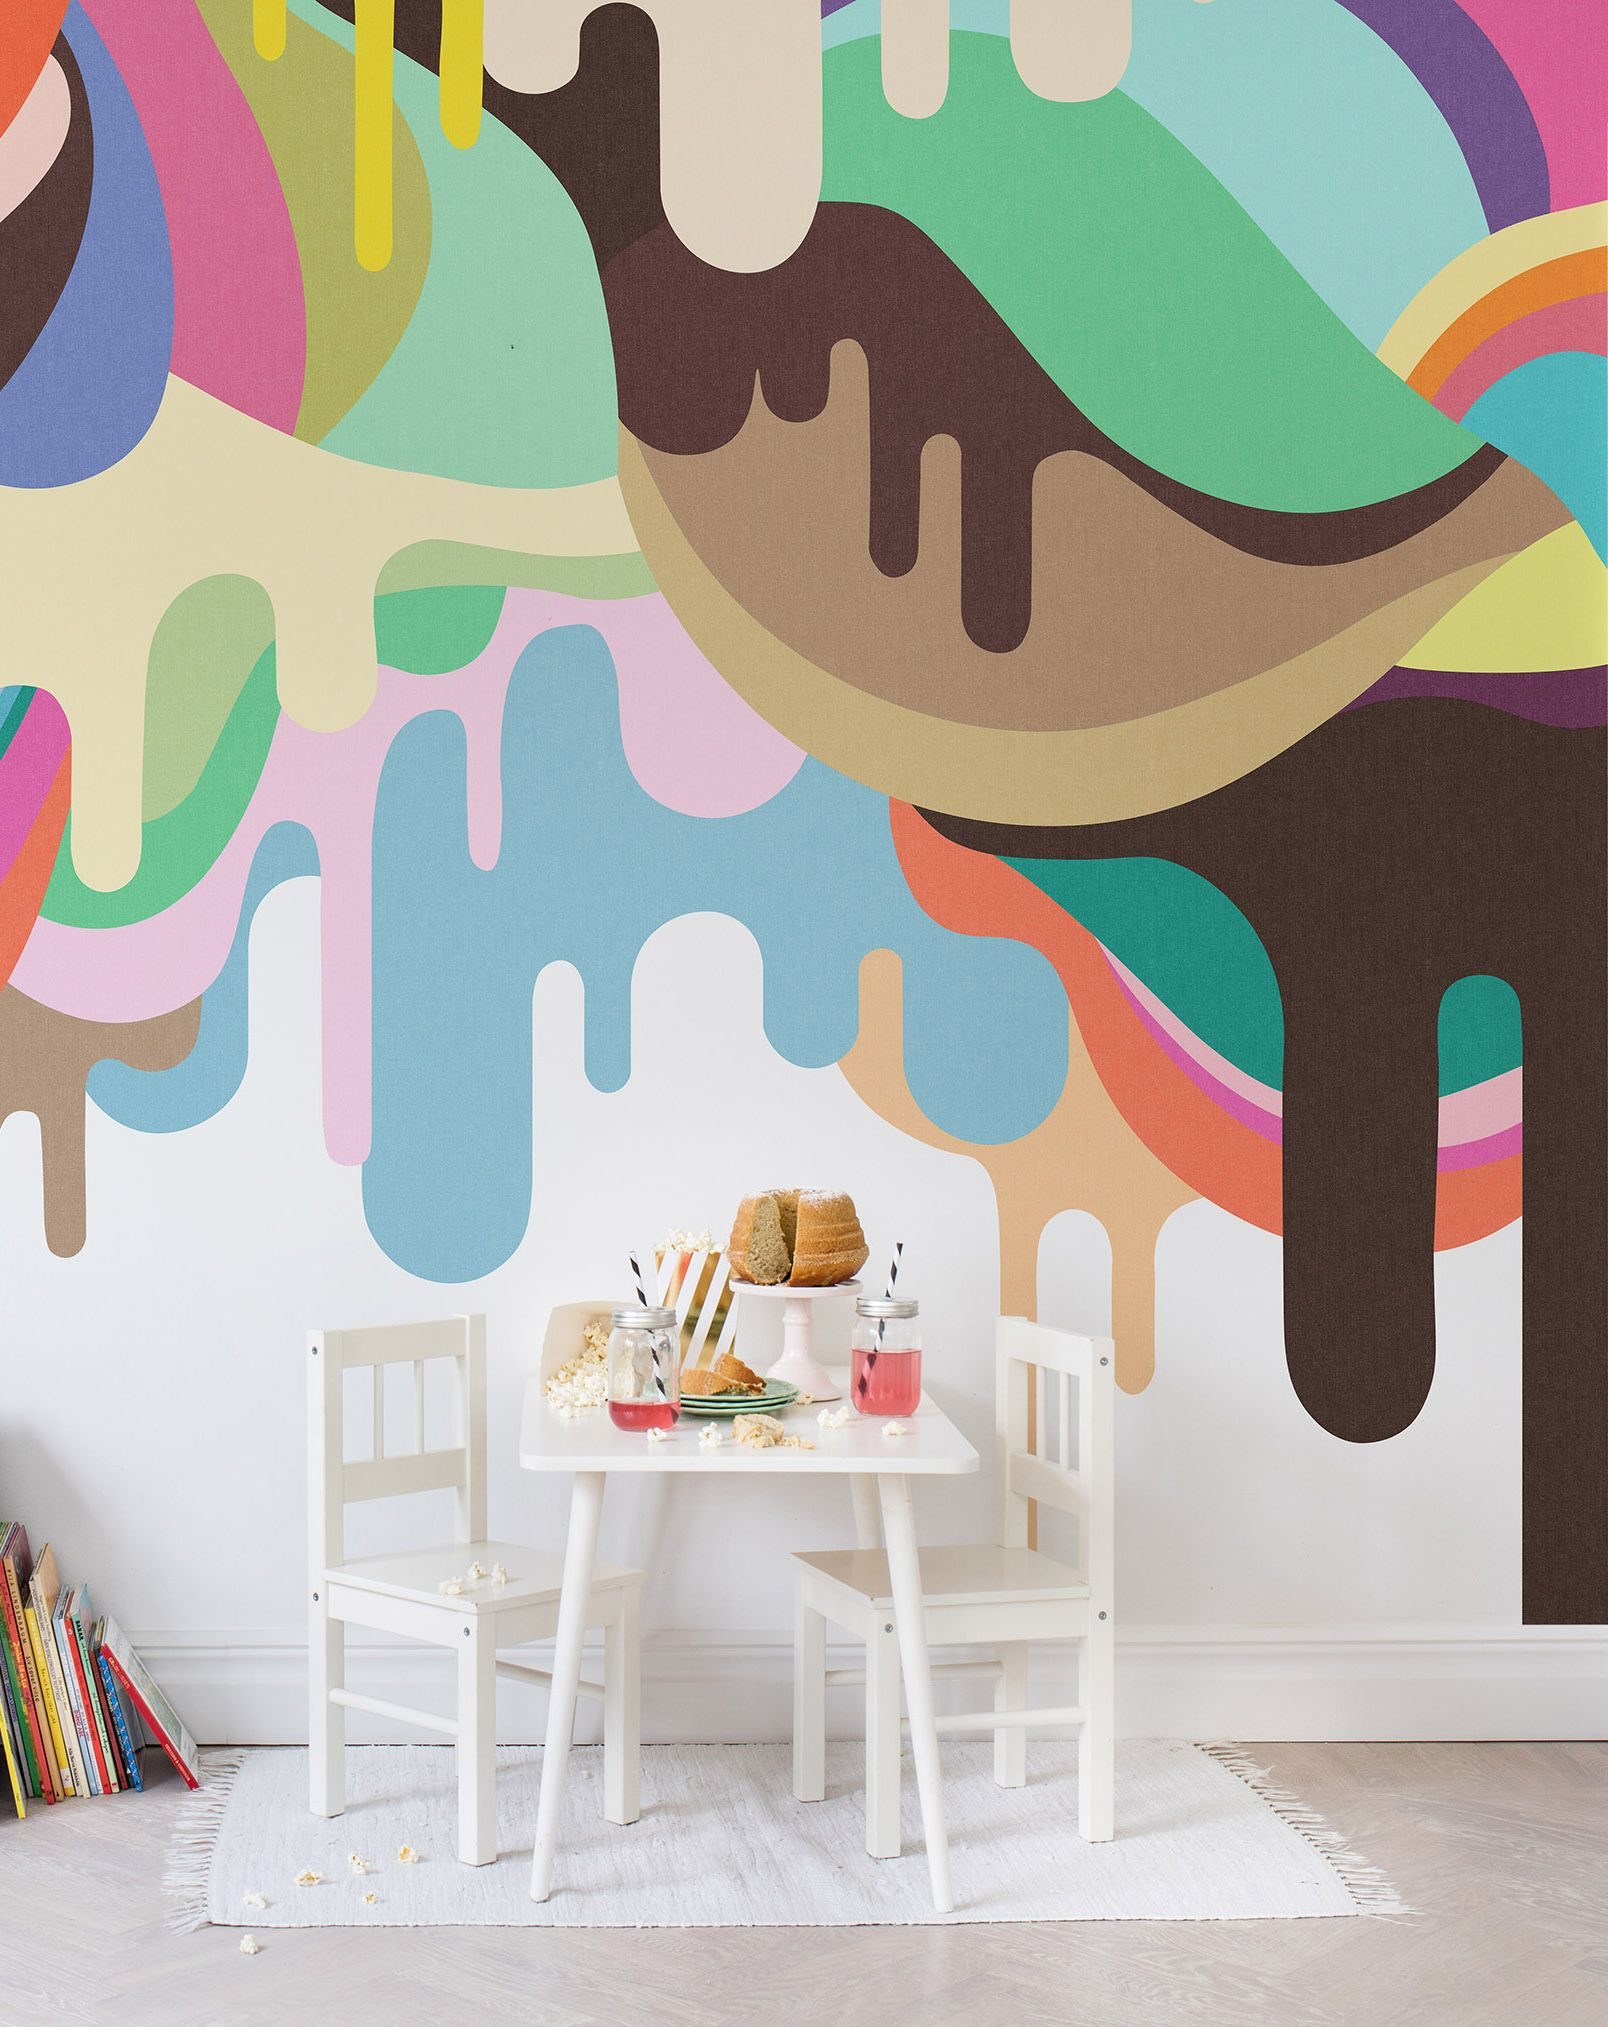 Wandtapete Kinderzimmer Dripping Ice Cream Wandtapete Wc Pinterest Barn